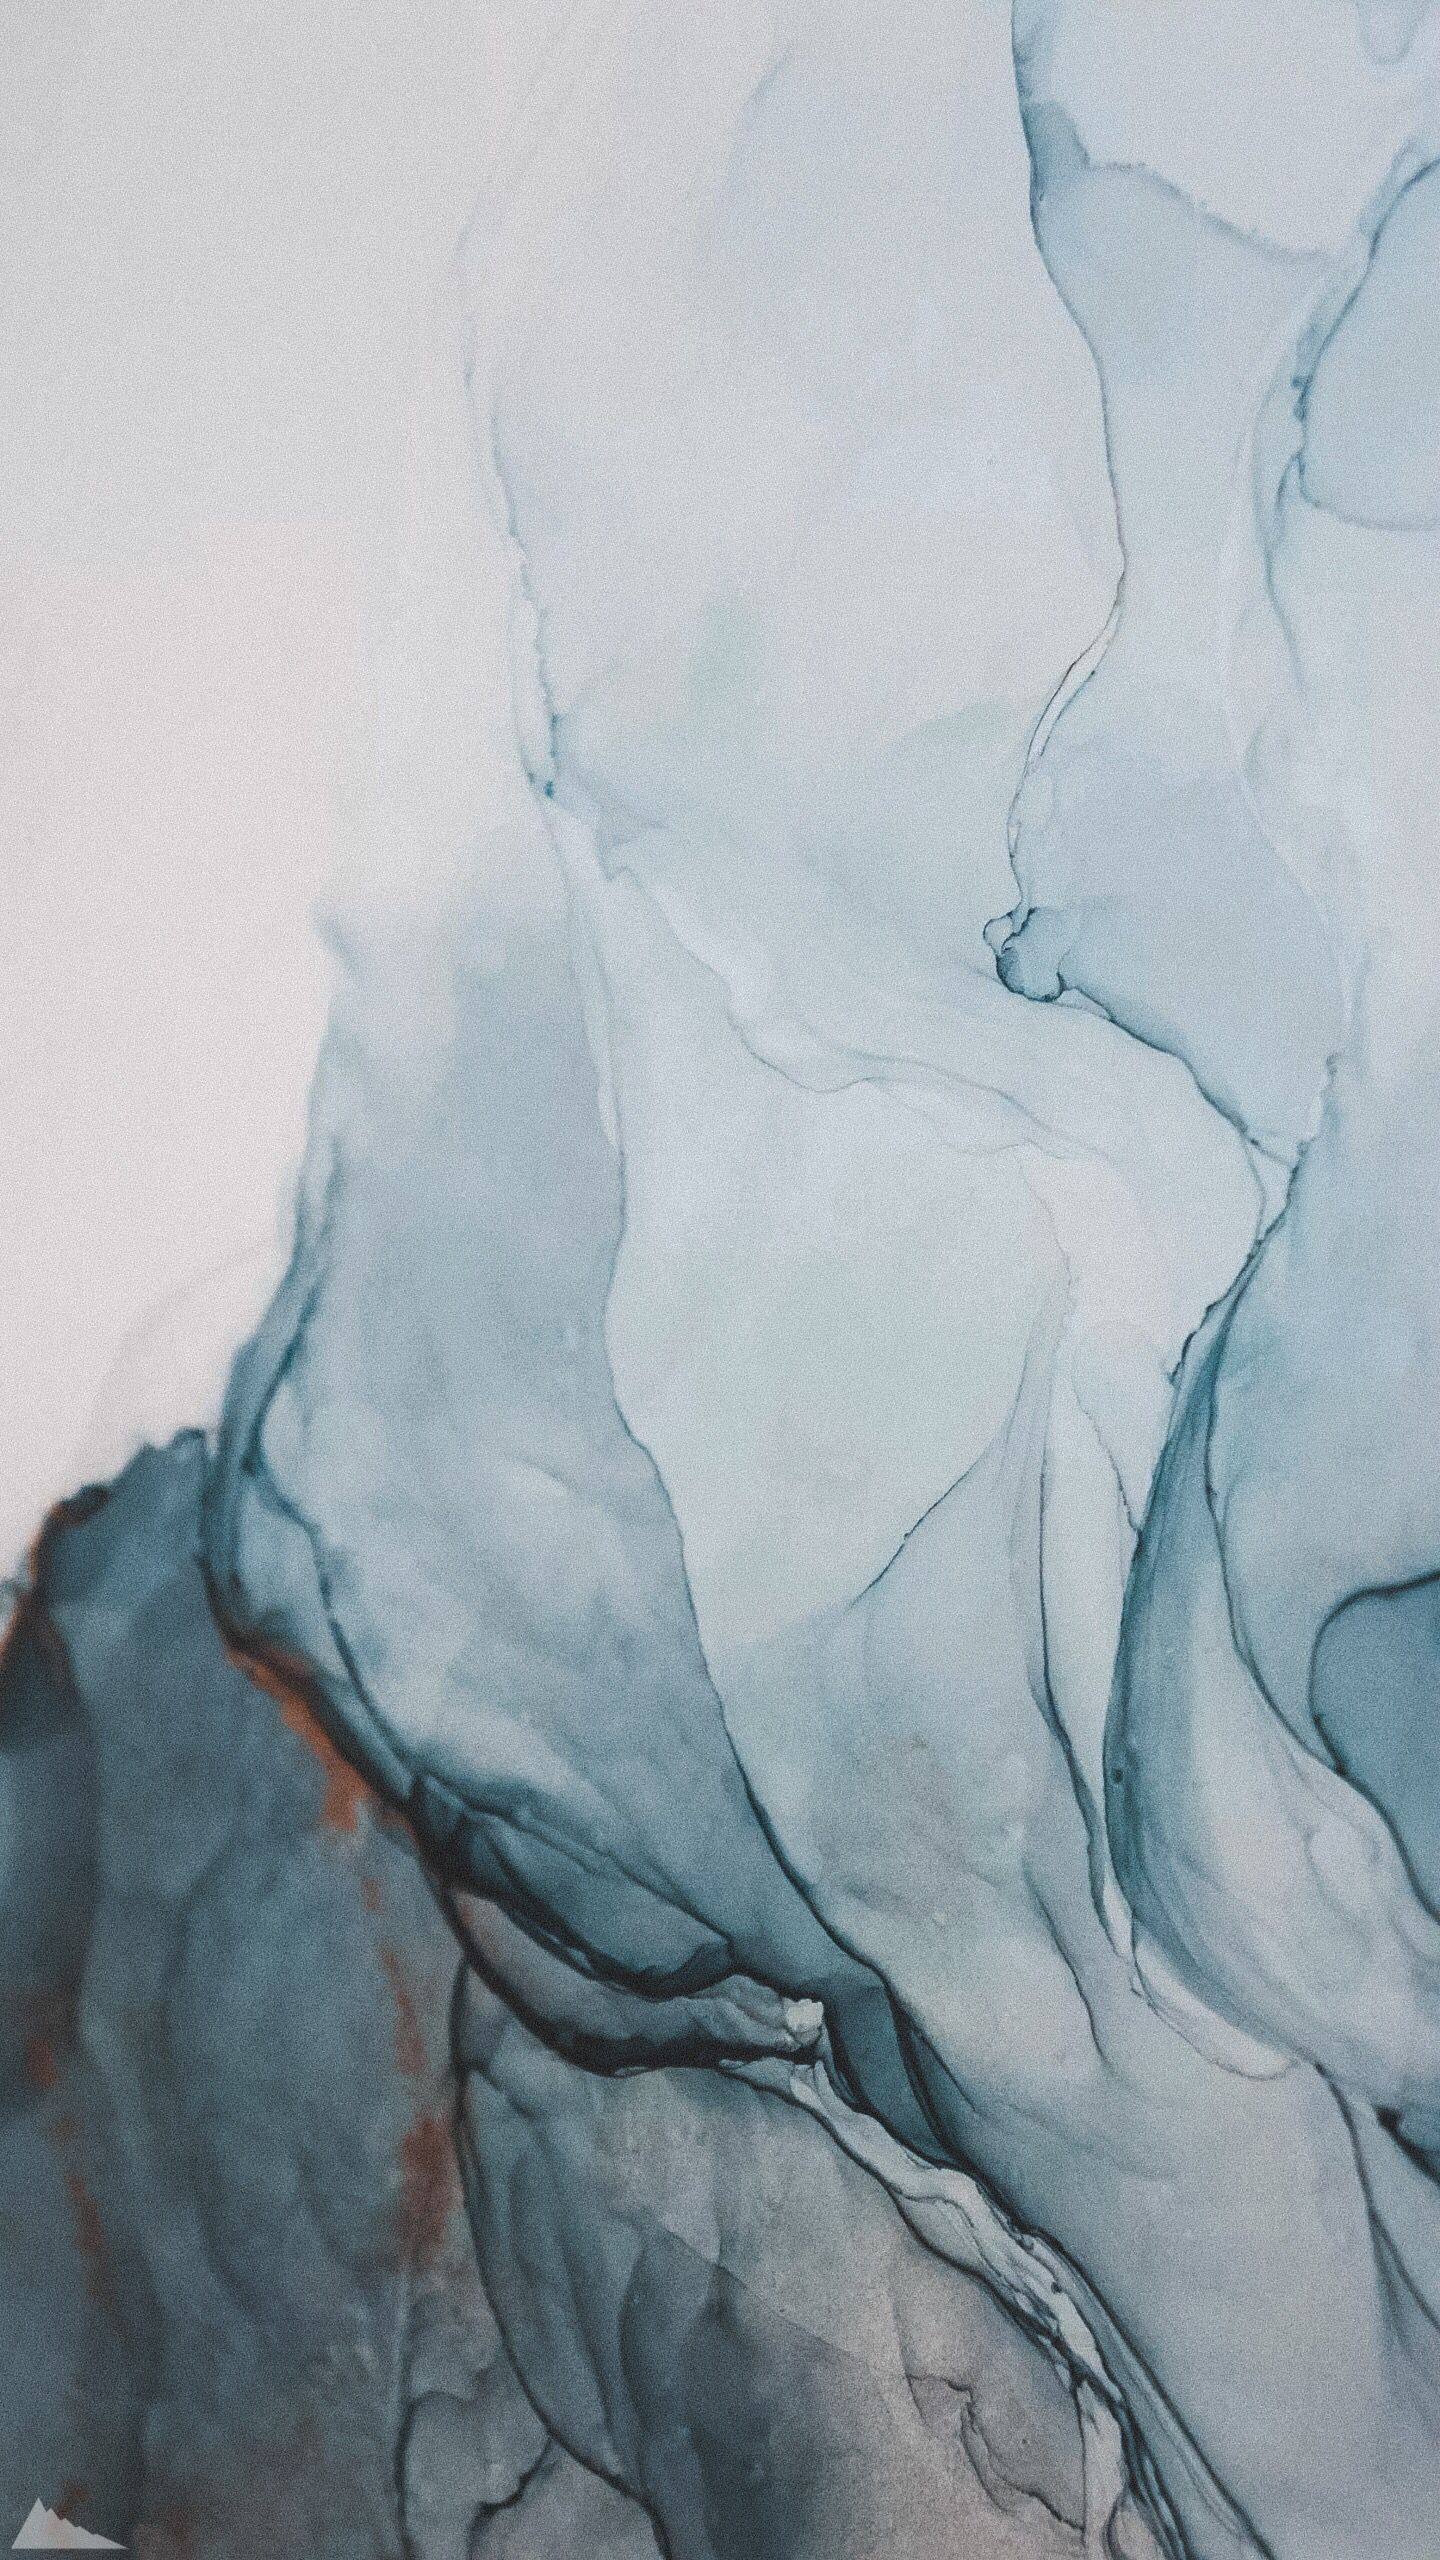 Pin By Clariss Wong On Wallpapers Watercolor Wallpaper